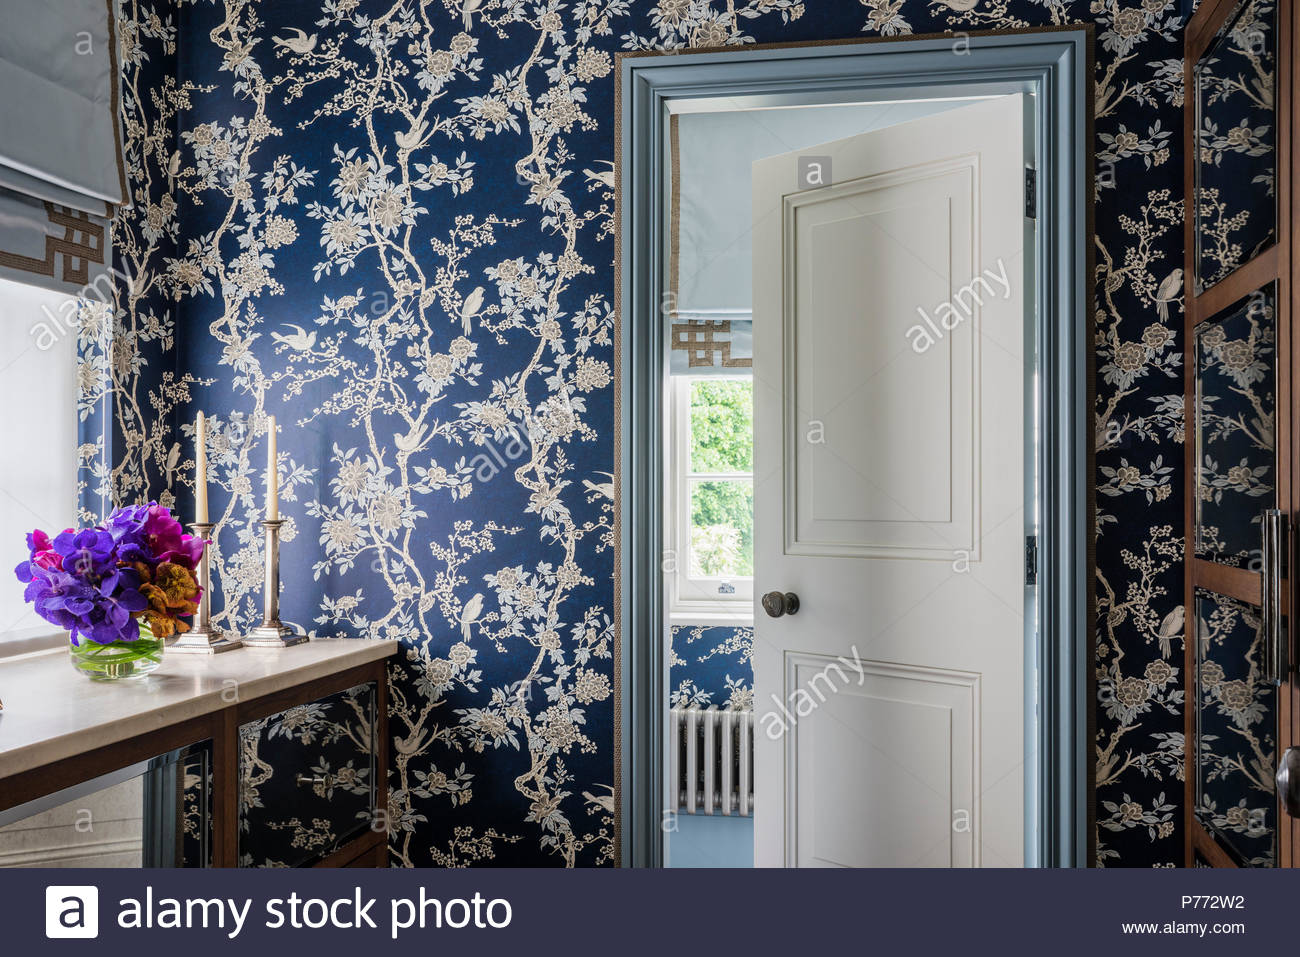 cut flowers at window cabinet with dark blue and gold oriental style